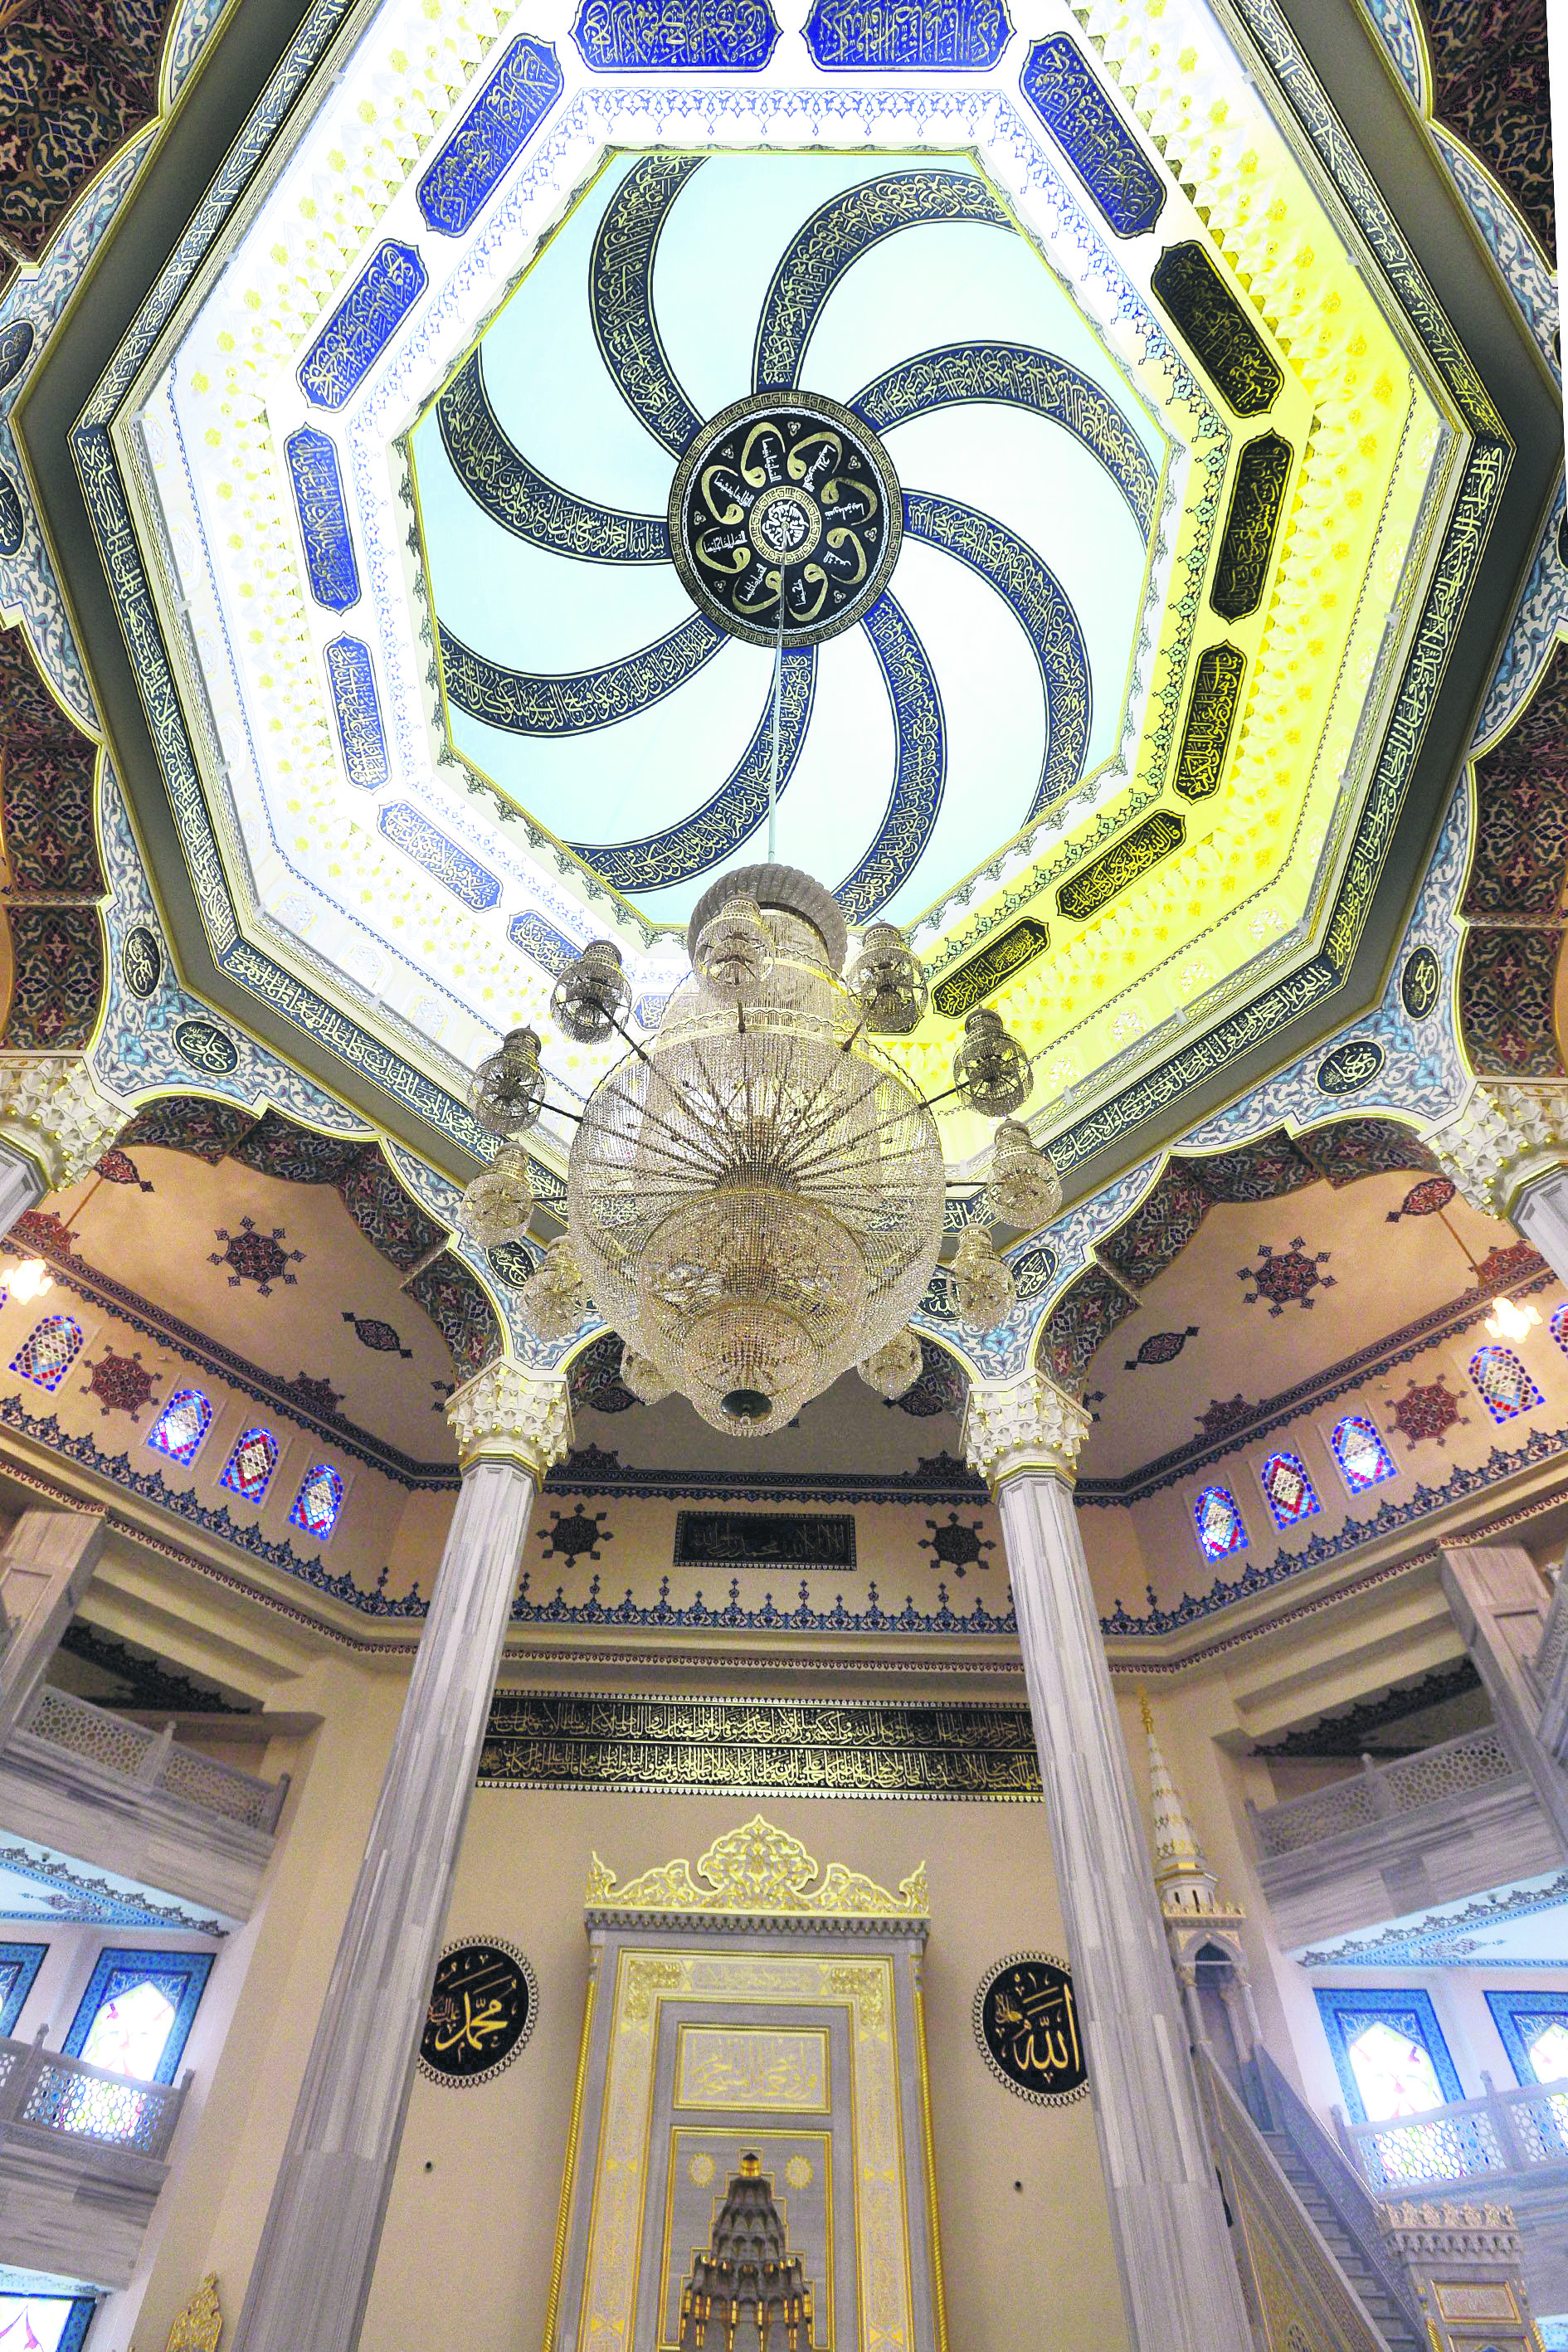 The top of the dome was embellished with verses from Surah al-Shams. These verses refer to all creations, including the moon, the earth, the night and day.